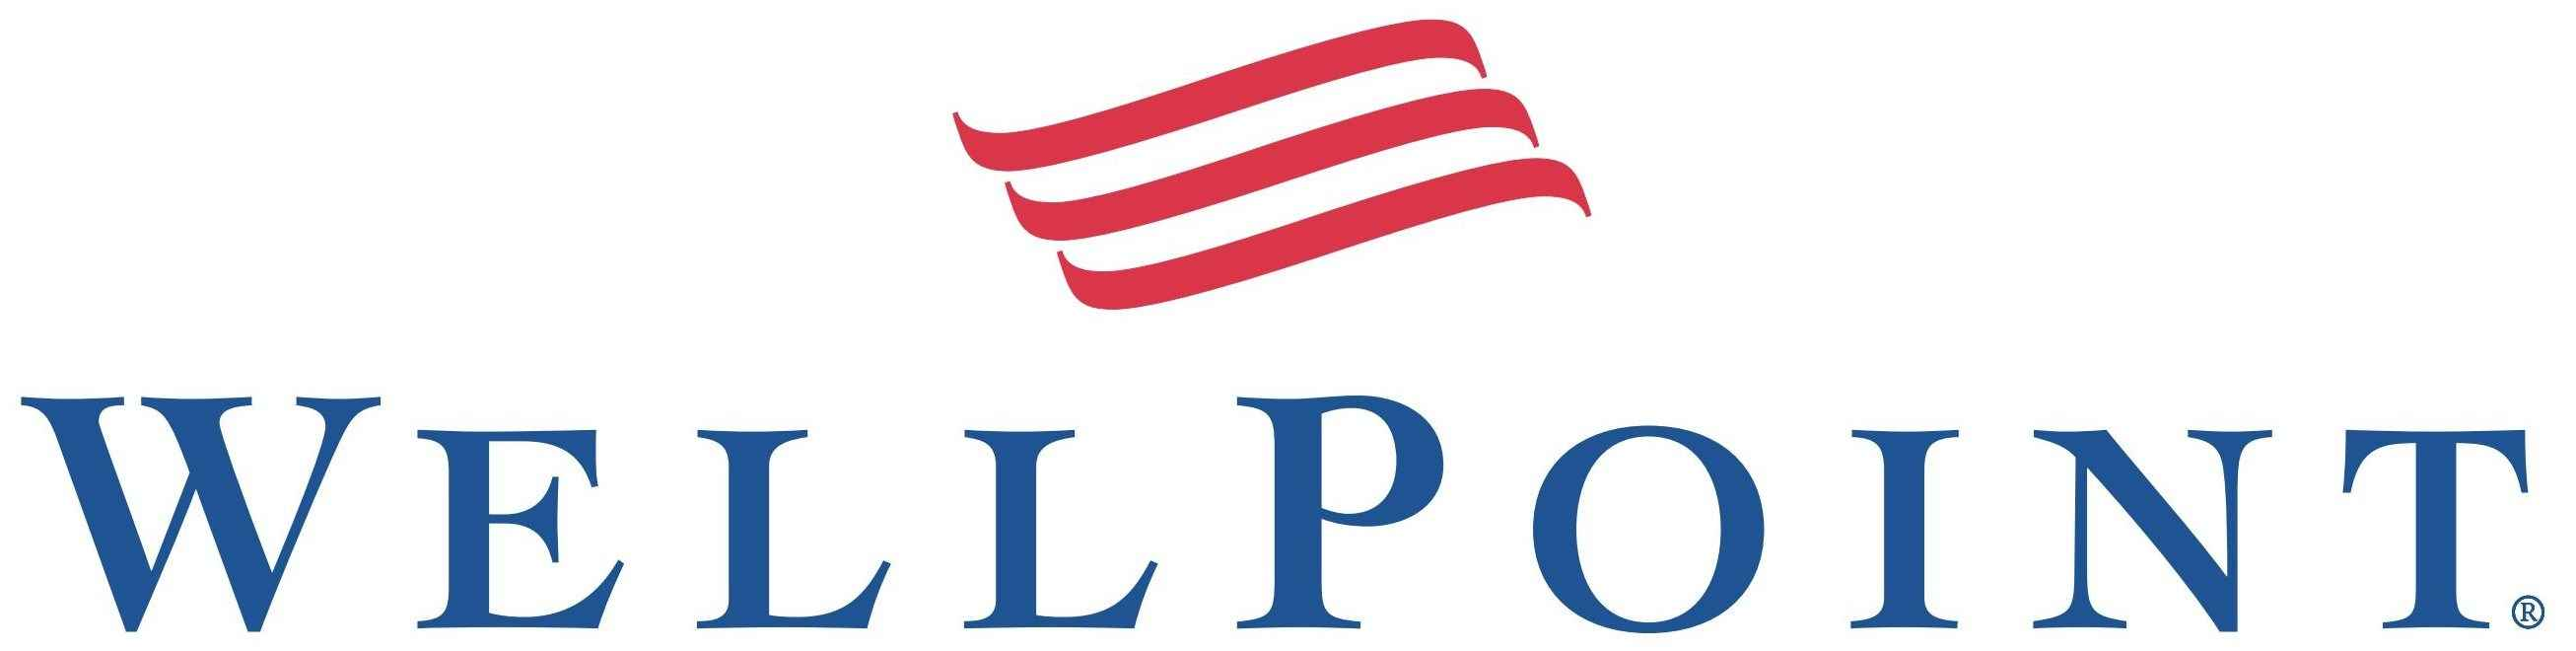 WellPoint Logo [EPS File] png